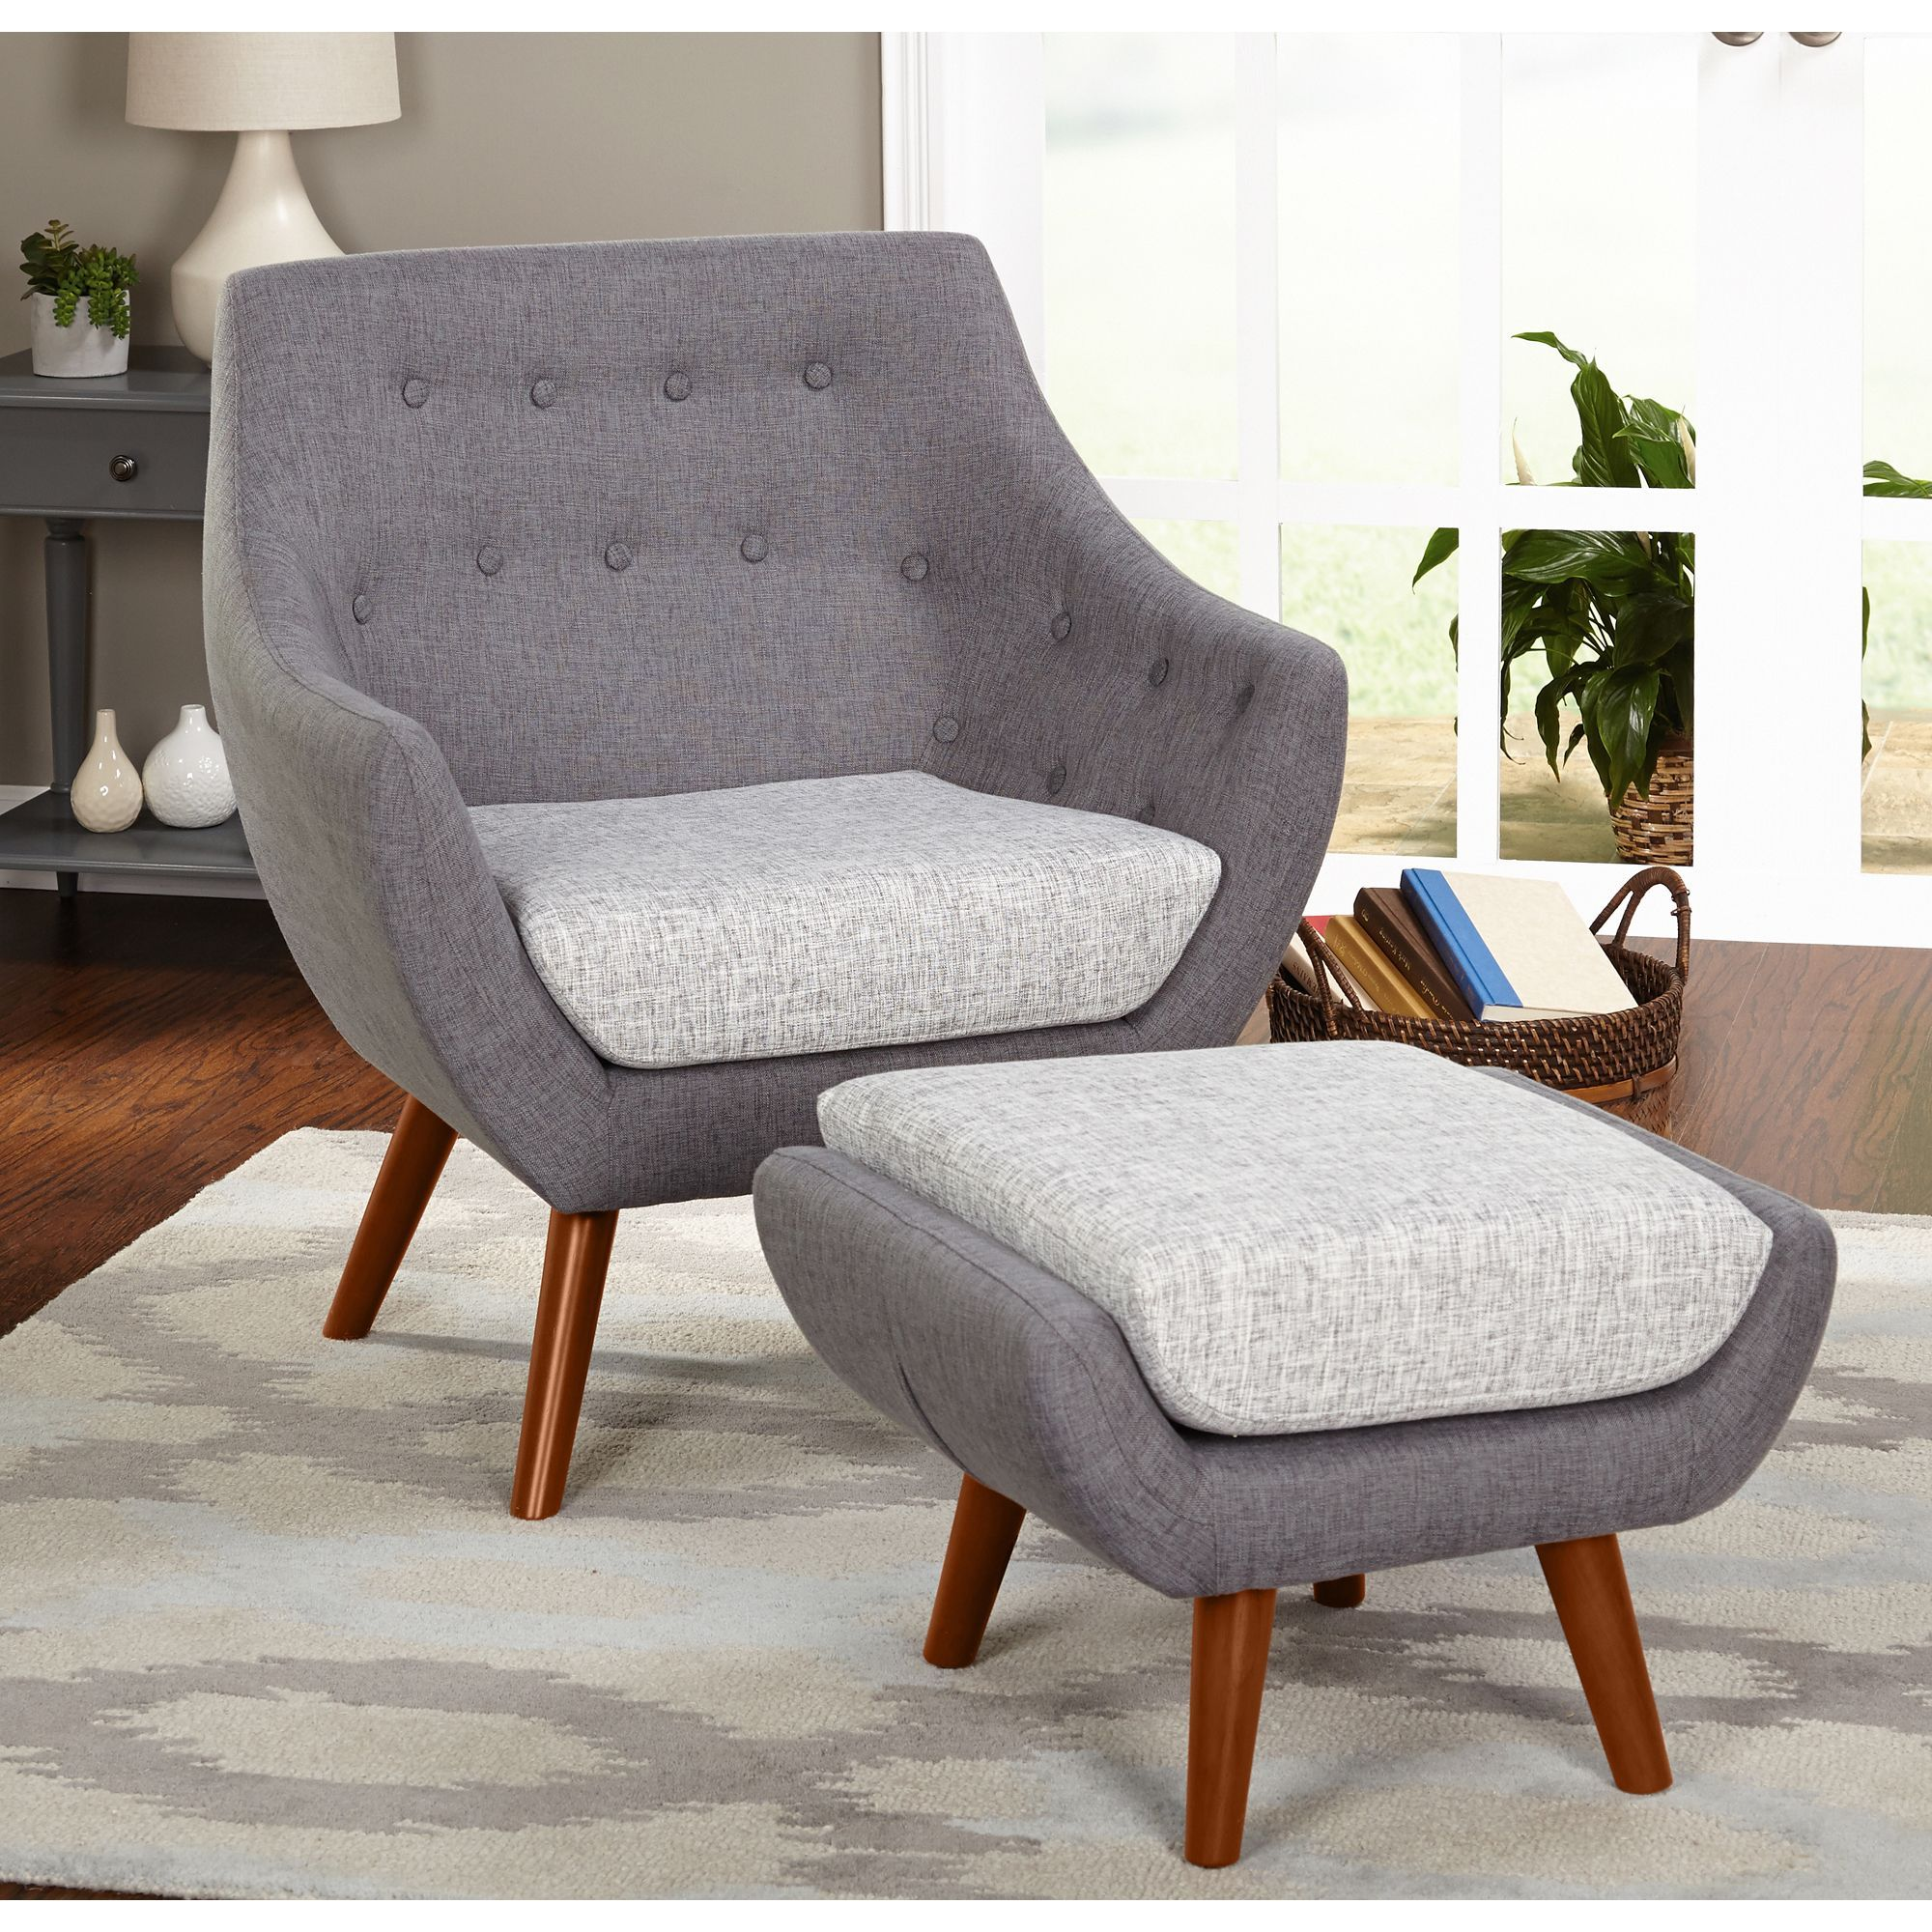 Overstock Com Online Shopping Bedding Furniture Electronics Jewelry Clothing More Chair And Ottoman Set Chair And Ottoman Living Room Chairs